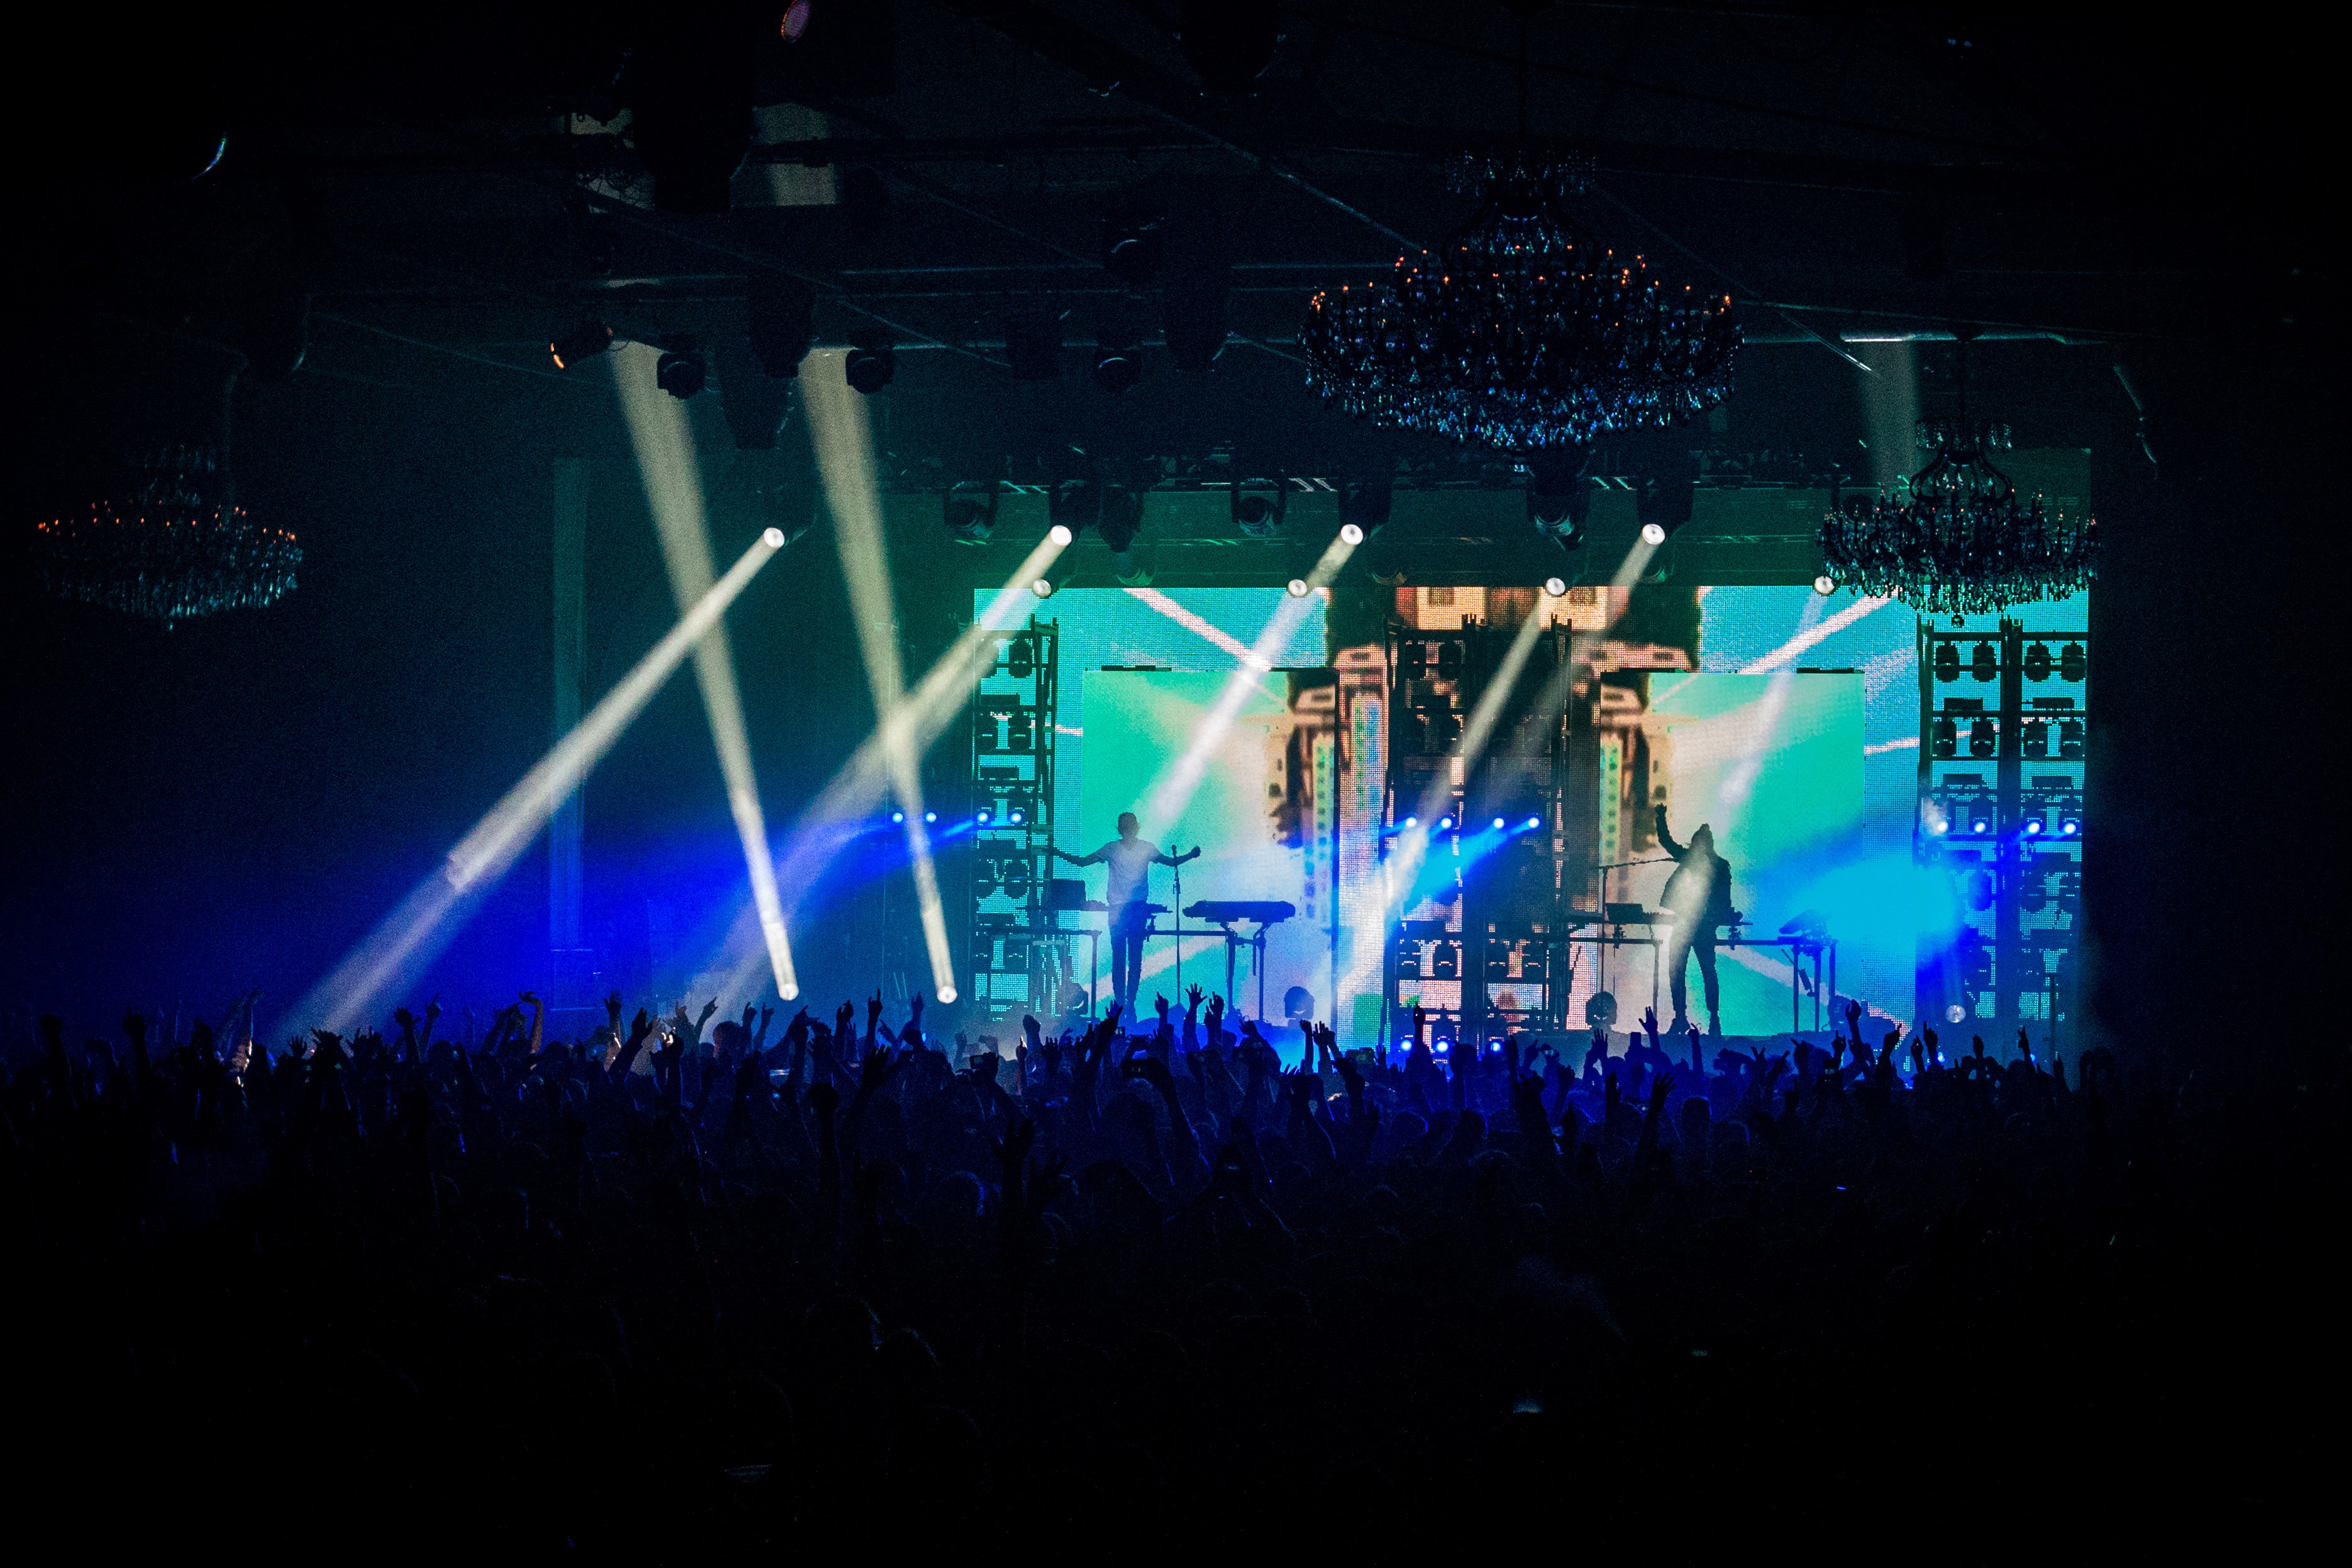 Concert review: Porter Robinson and Madeon's tour to end all tours